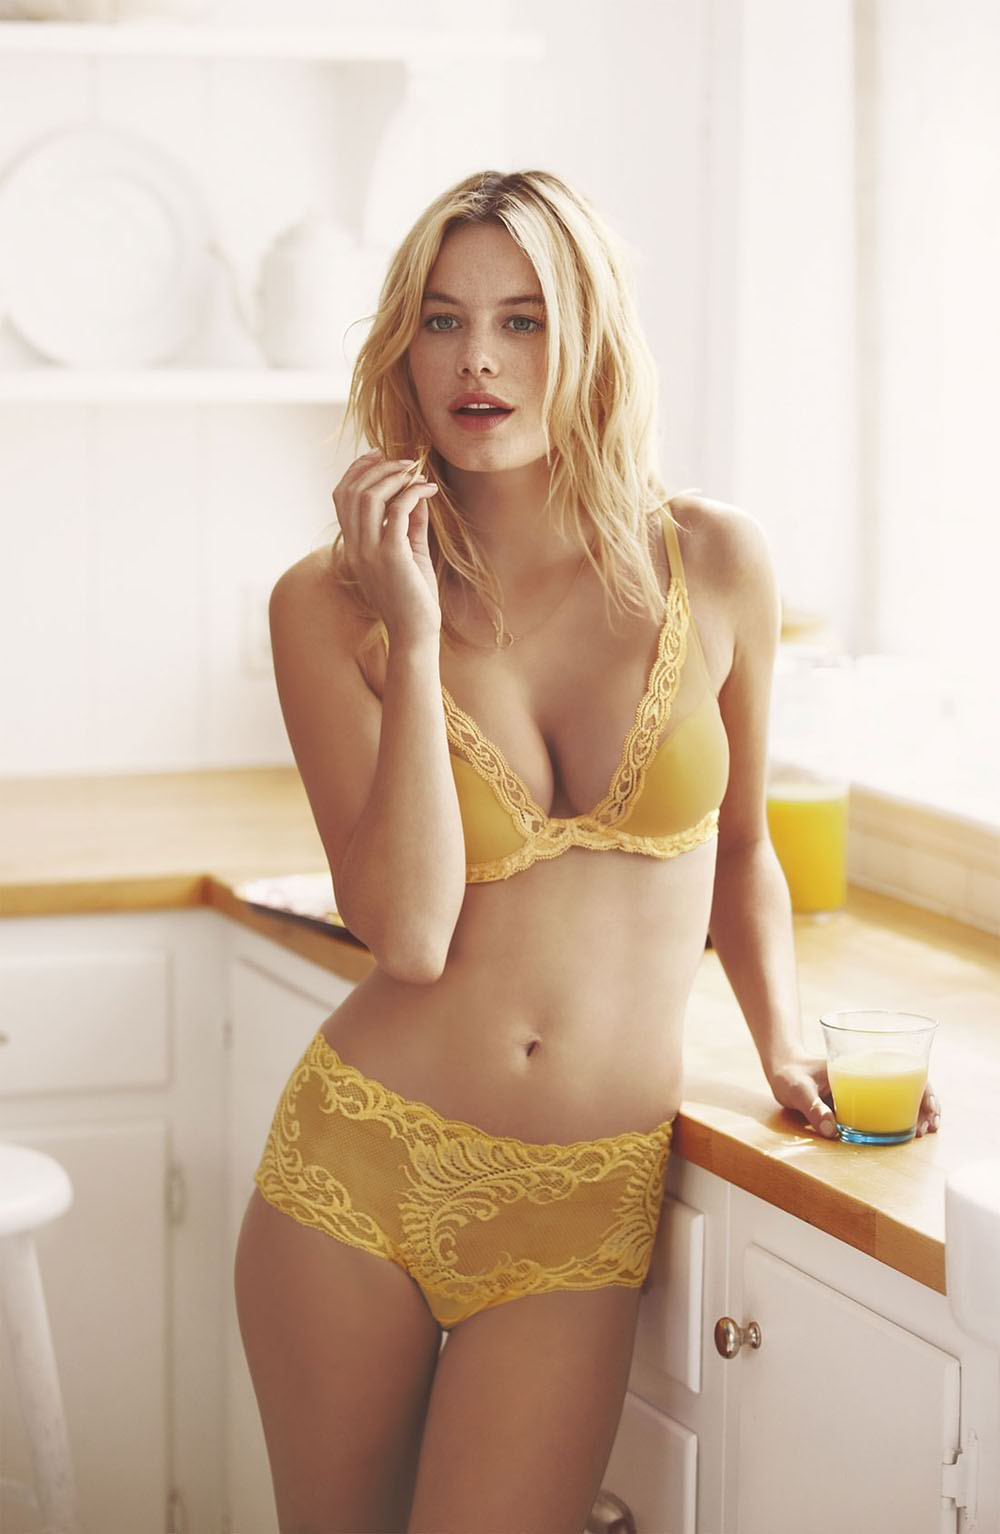 camille rowe0816023310